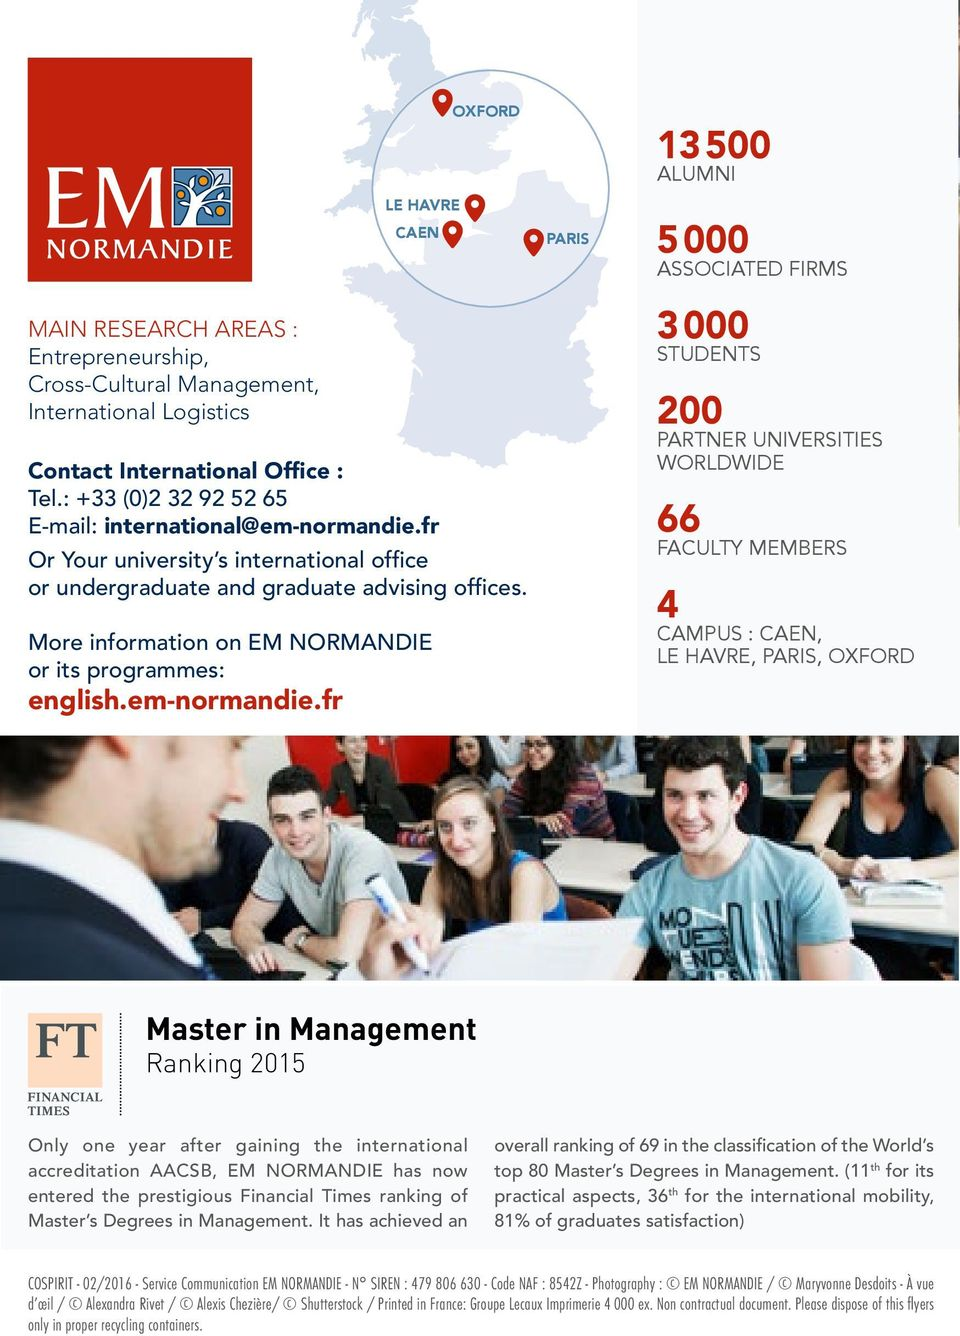 fr OXFORD PARIS 13 500 ALUMNI 5 000 ASSOCIATED FIRMS 3 000 STUDENTS 200 PARTNER UNIVERSITIES WORLDWIDE 66 FACULTY MEMBERS 4 CAMPUS : CAEN, LE HAVRE, PARIS, OXFORD Master in Management Ranking 2015